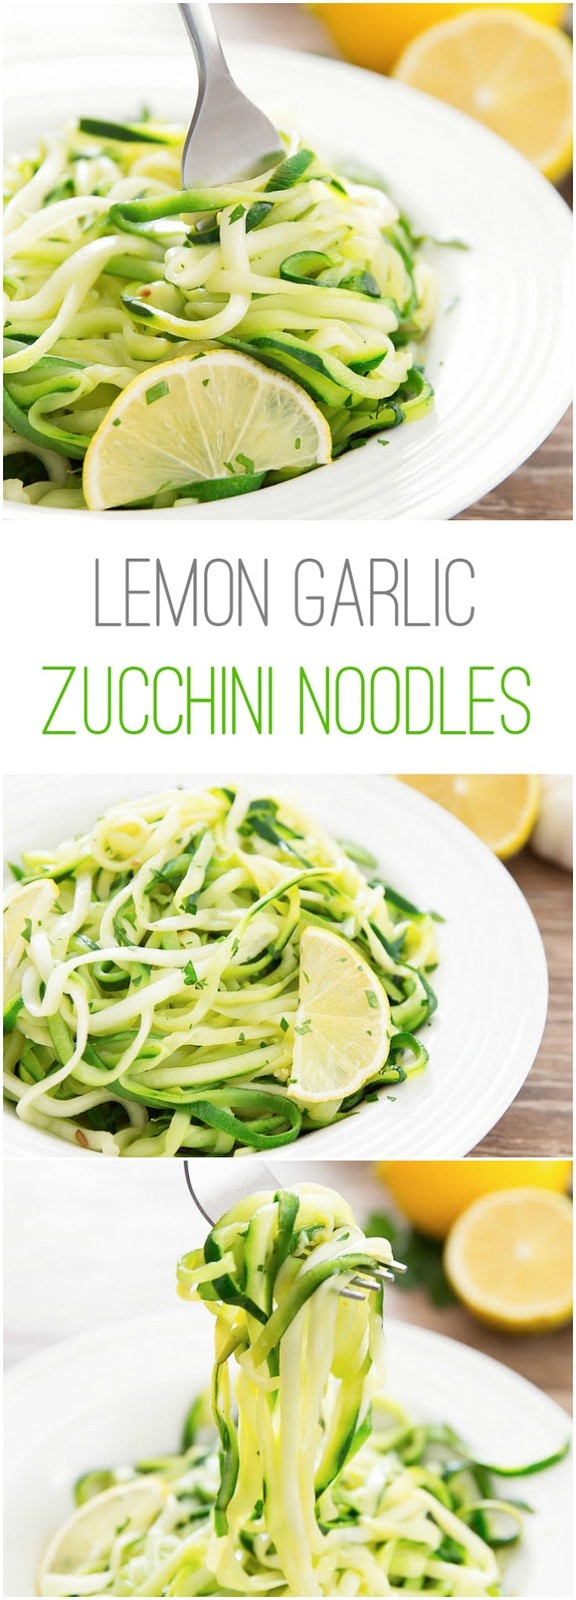 Lemon Garlic Zucchini Noodles. A light, low carb, easy dish.